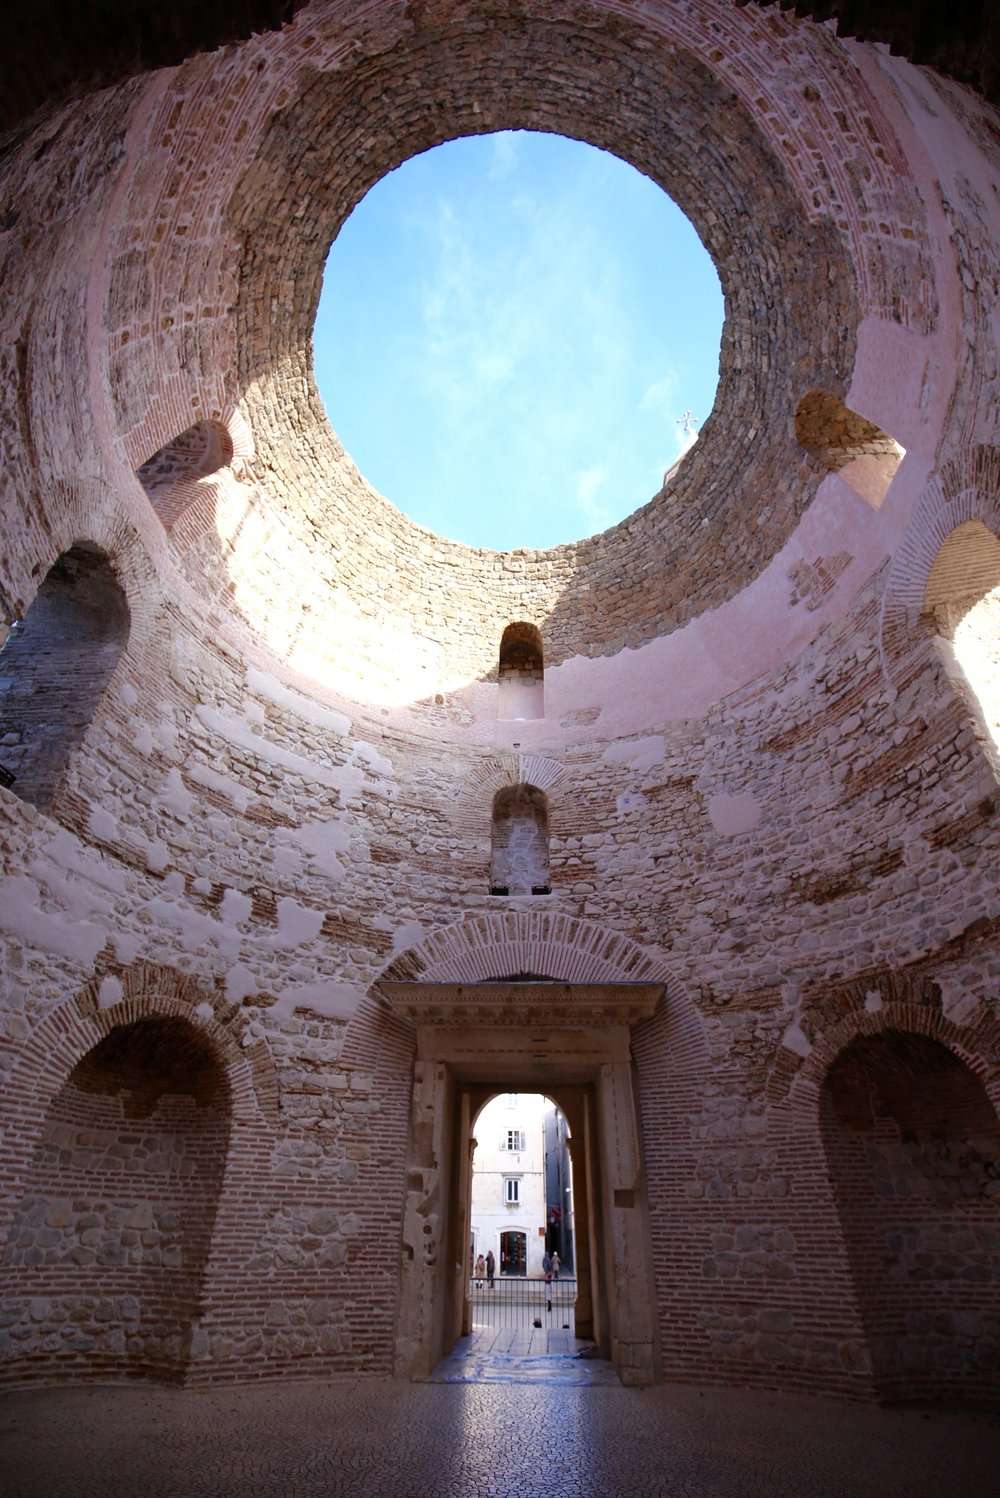 Diocletian's Palace in Split. The temple has a circular hole in the pink stone ceiling.